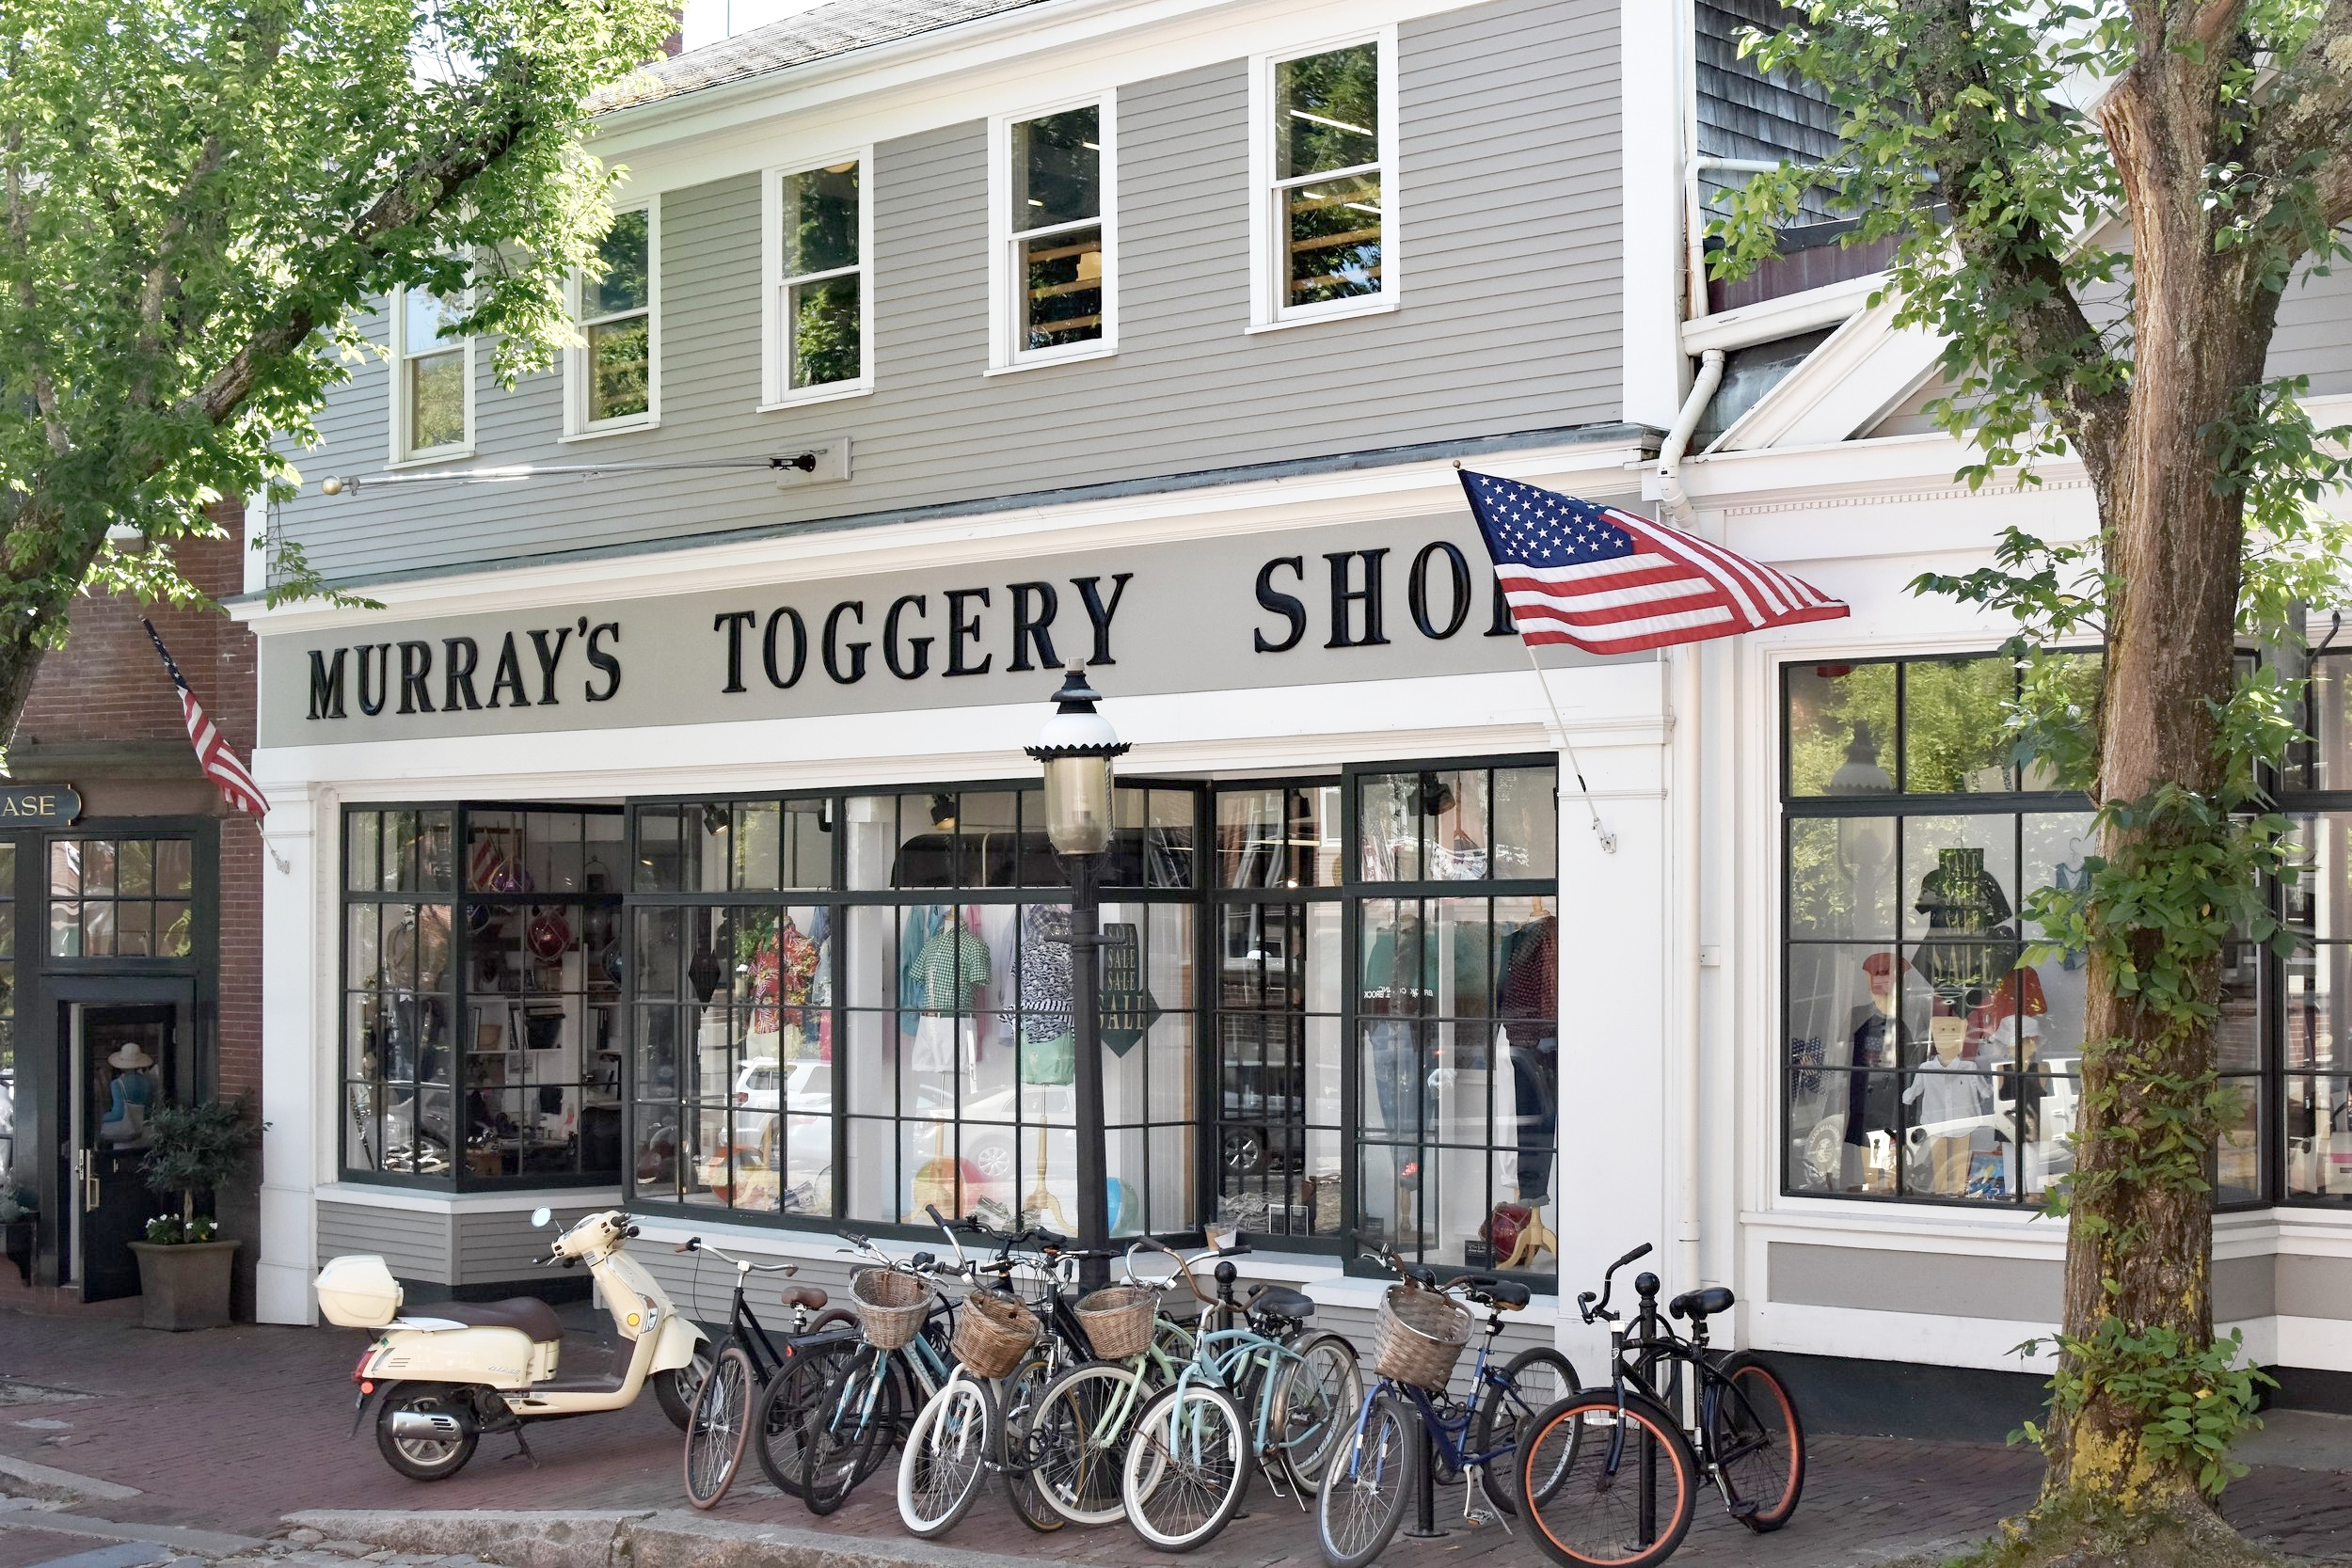 Murray's Toggery Shop , a veritable retail legend, was established in 1945 at the top of Main Street.